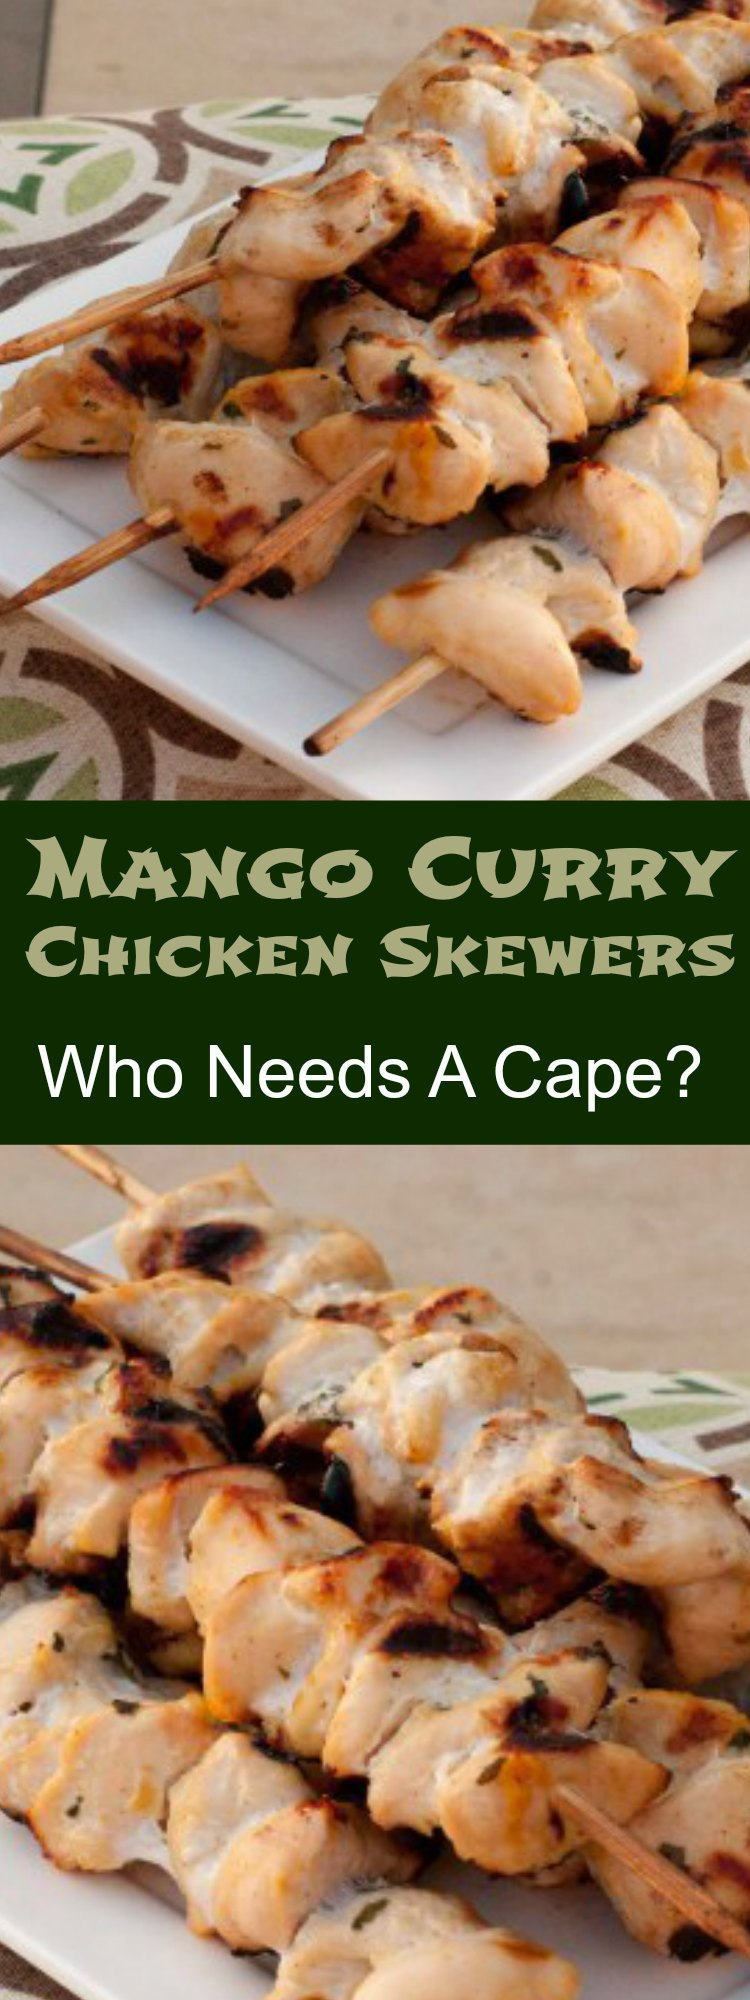 Mango Curry Chicken Skewers   Who Needs A Cape?